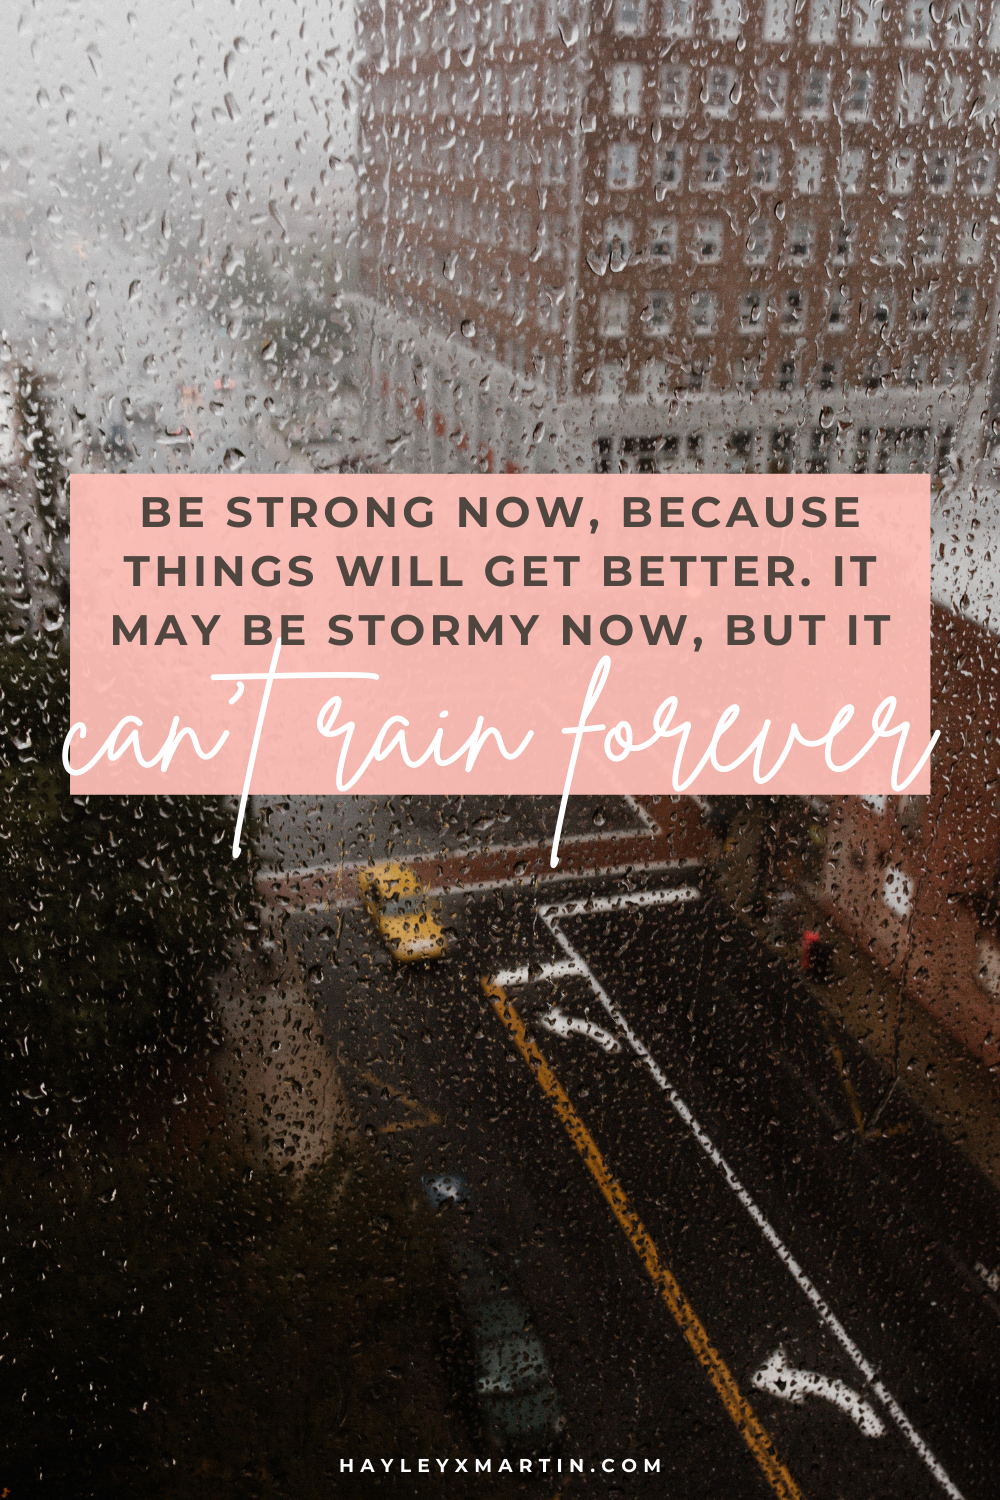 Be strong now, because things will get better. It may be stormy now, but it can't rain forever.